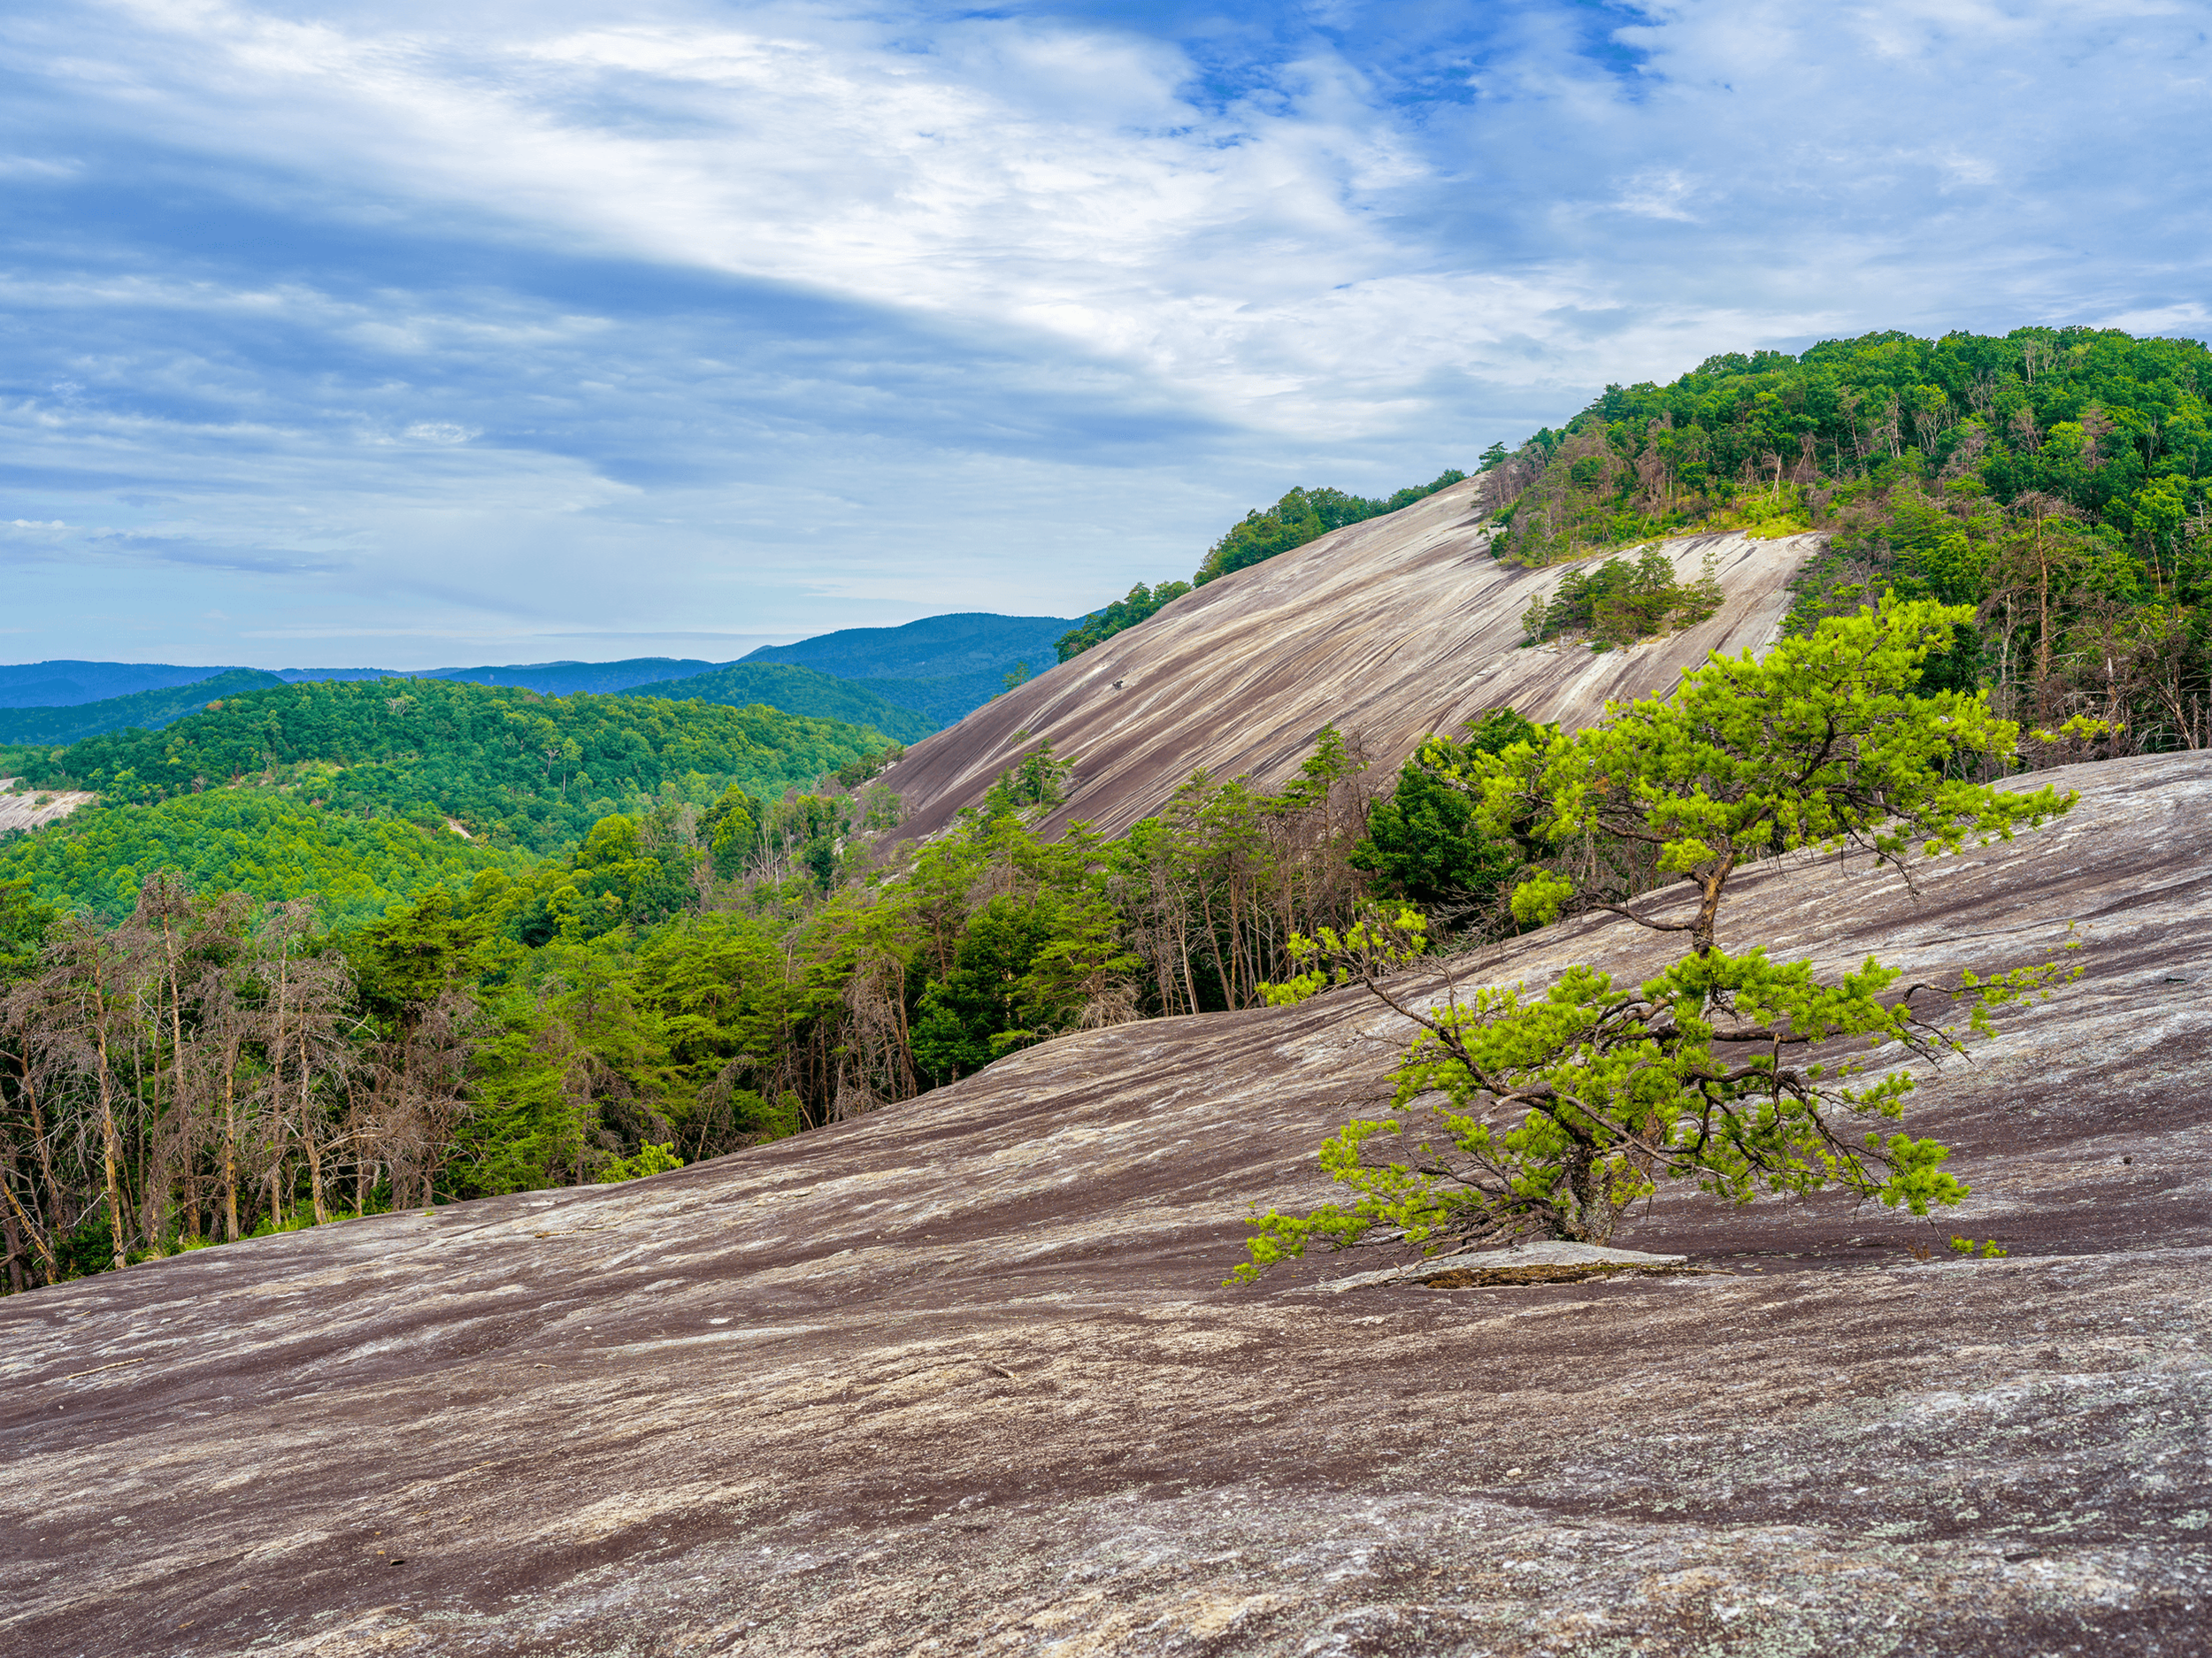 Here is a view of the 600-foot granite dome. The surface is very smooth, polished from 400 million years of rain and wind.